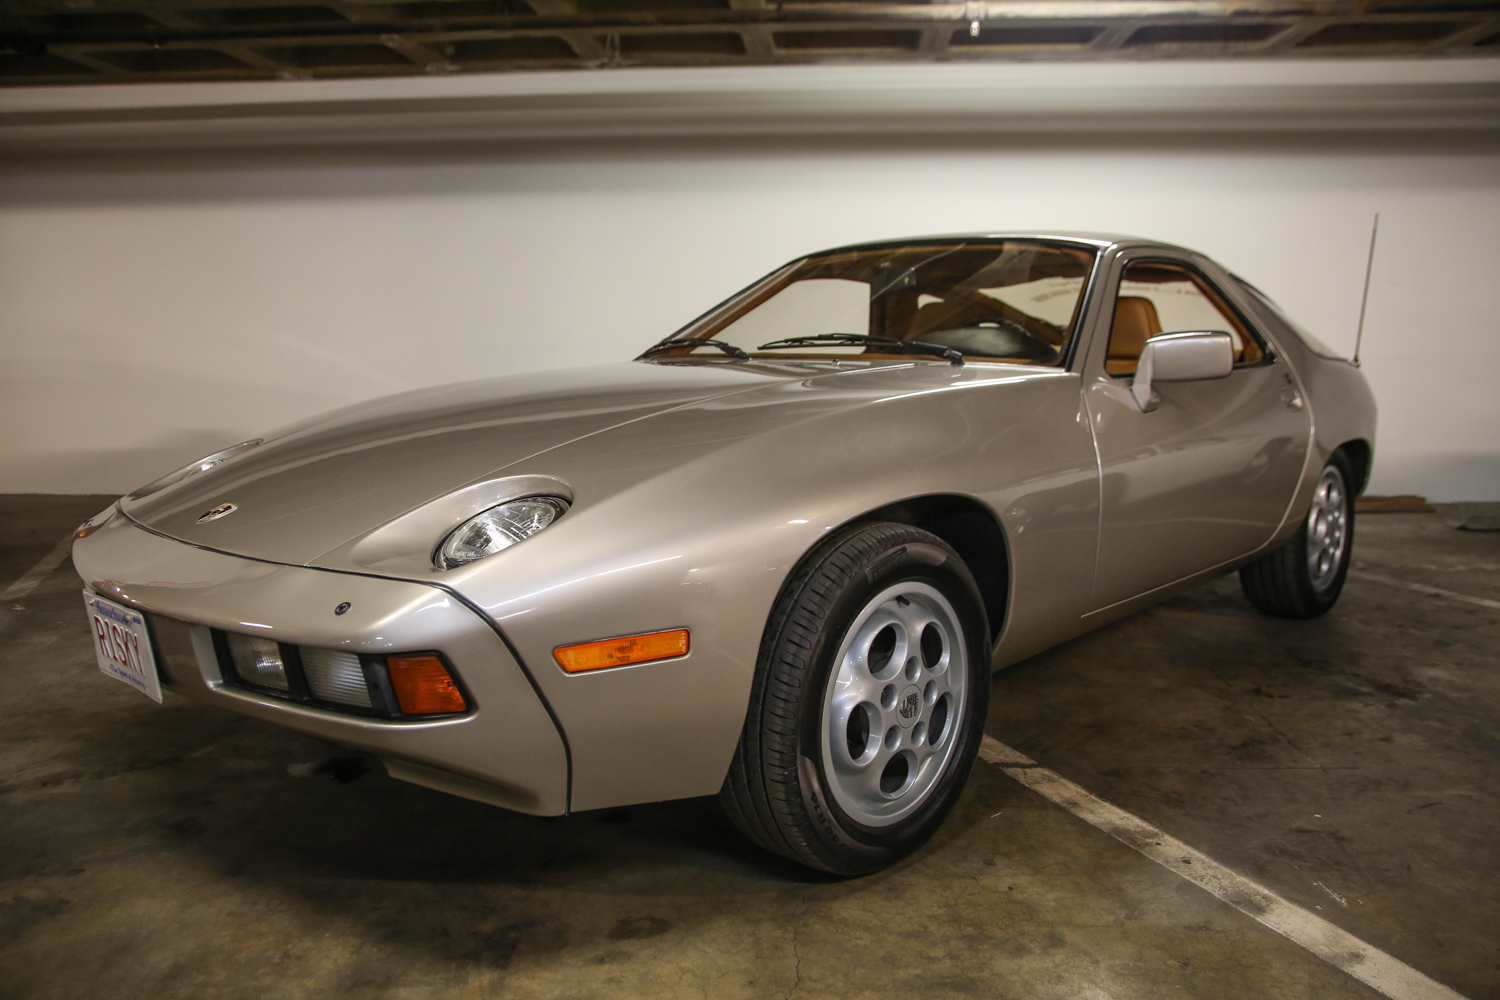 A 928 used in the filming of the 1983 Tom Cruise film Risky Business was in the Vault on several of our last few visits.